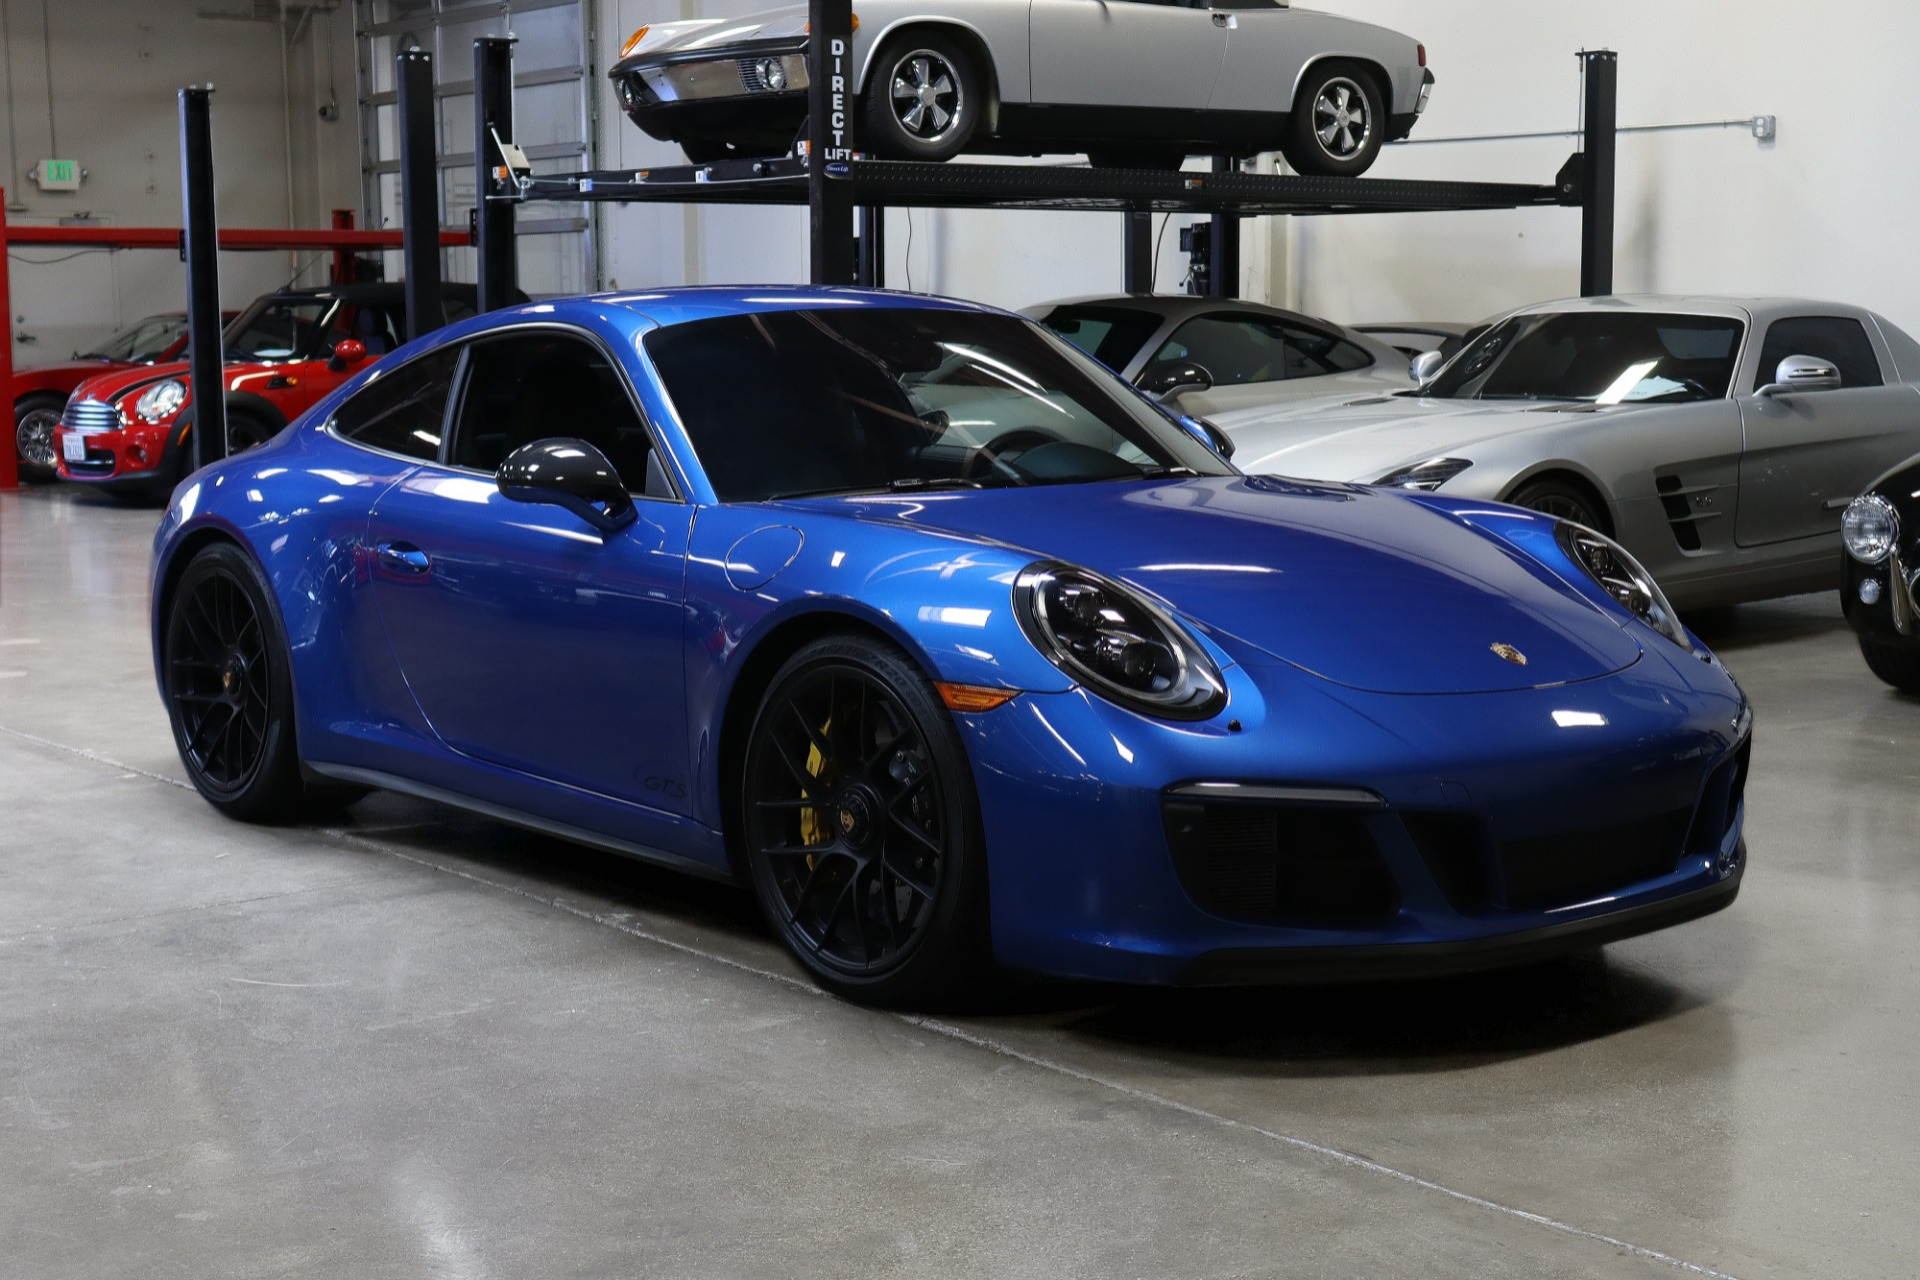 Used 2018 Porsche 911 Carrera 4 GTS for sale $138,995 at San Francisco Sports Cars in San Carlos CA 94070 1